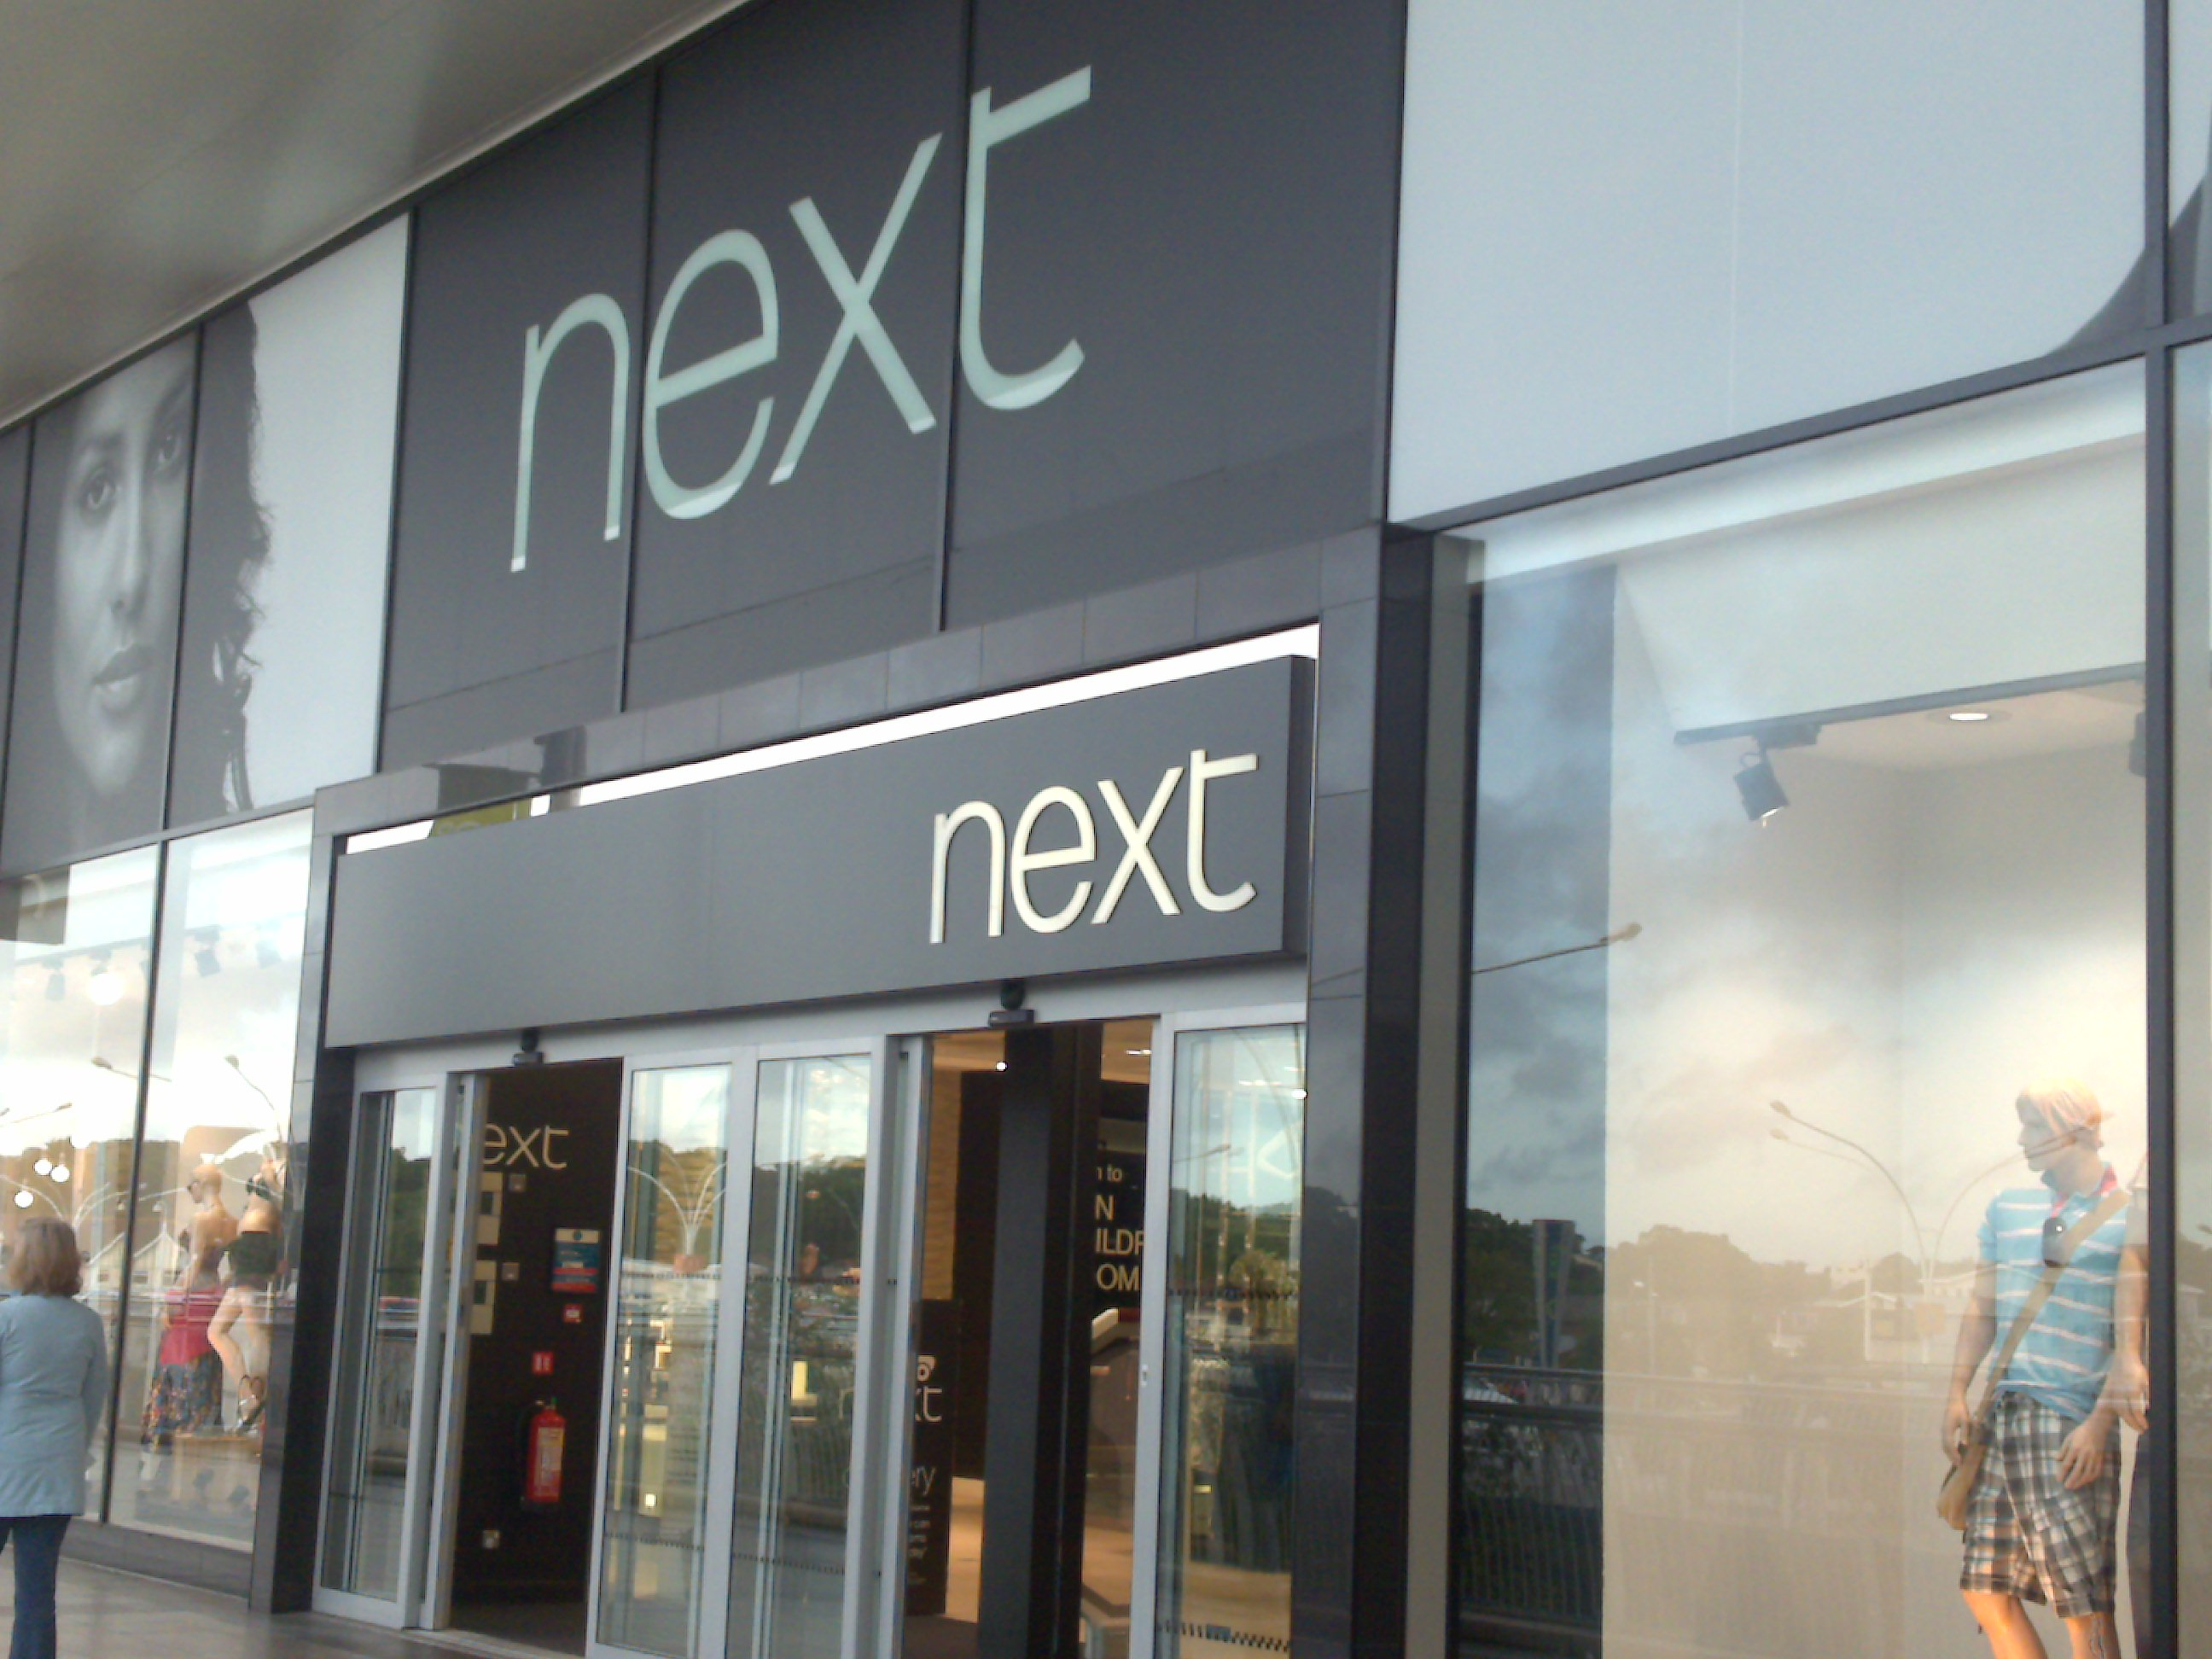 Next loses battle against HMRC, which claimed the retailer was avoiding tax